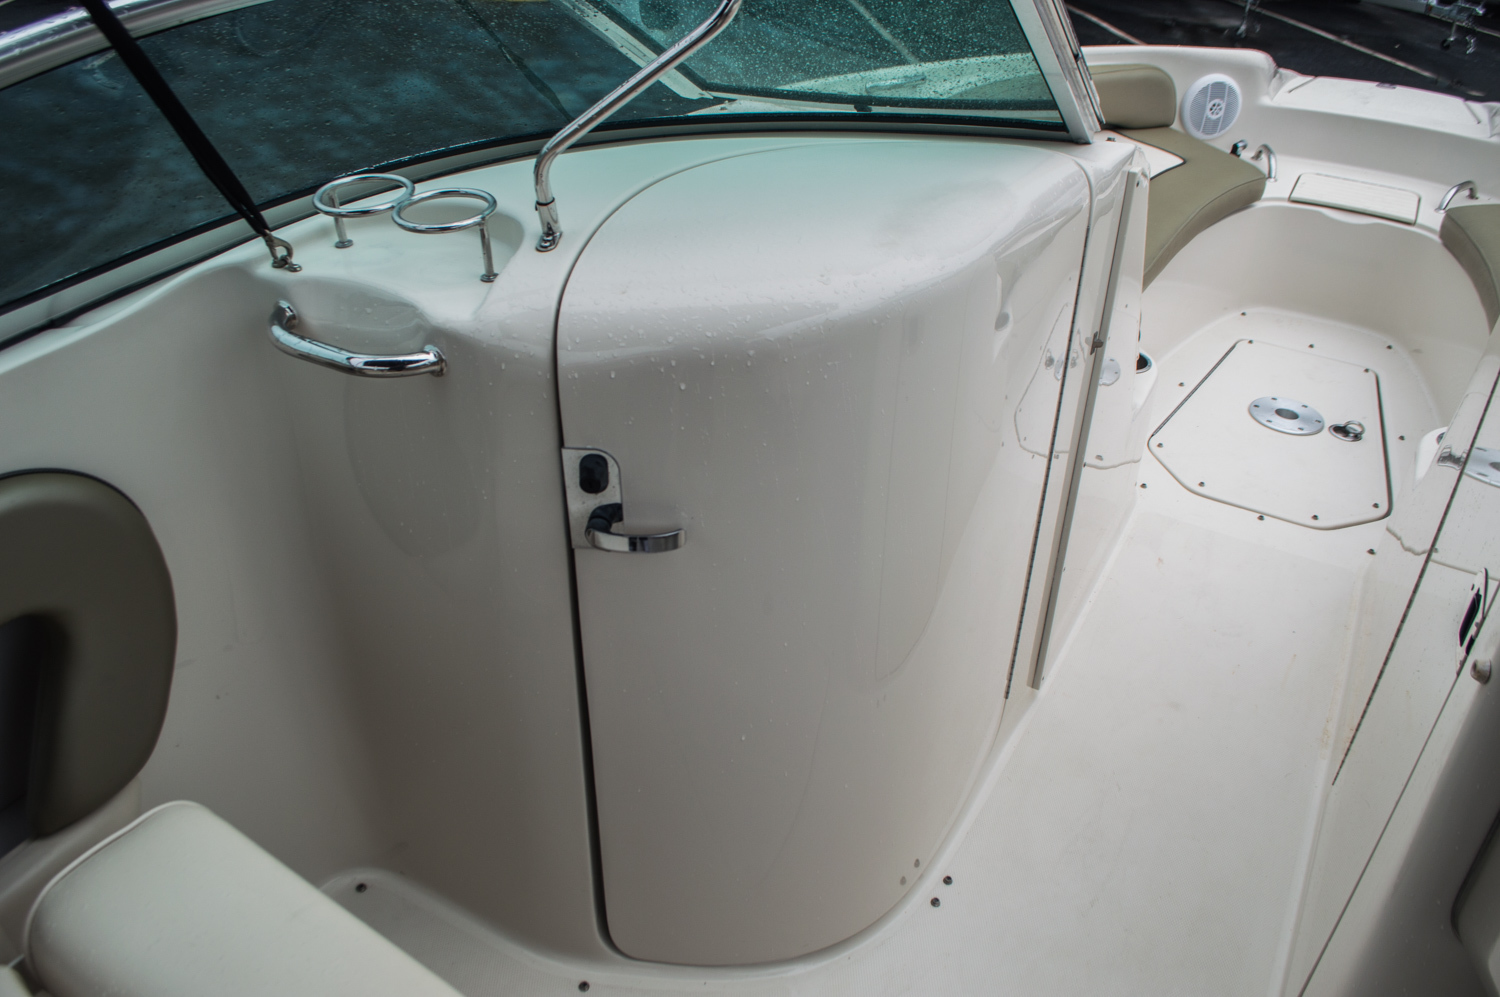 Thumbnail 22 for Used 2005 Sea Ray 240 Sundeck boat for sale in West Palm Beach, FL